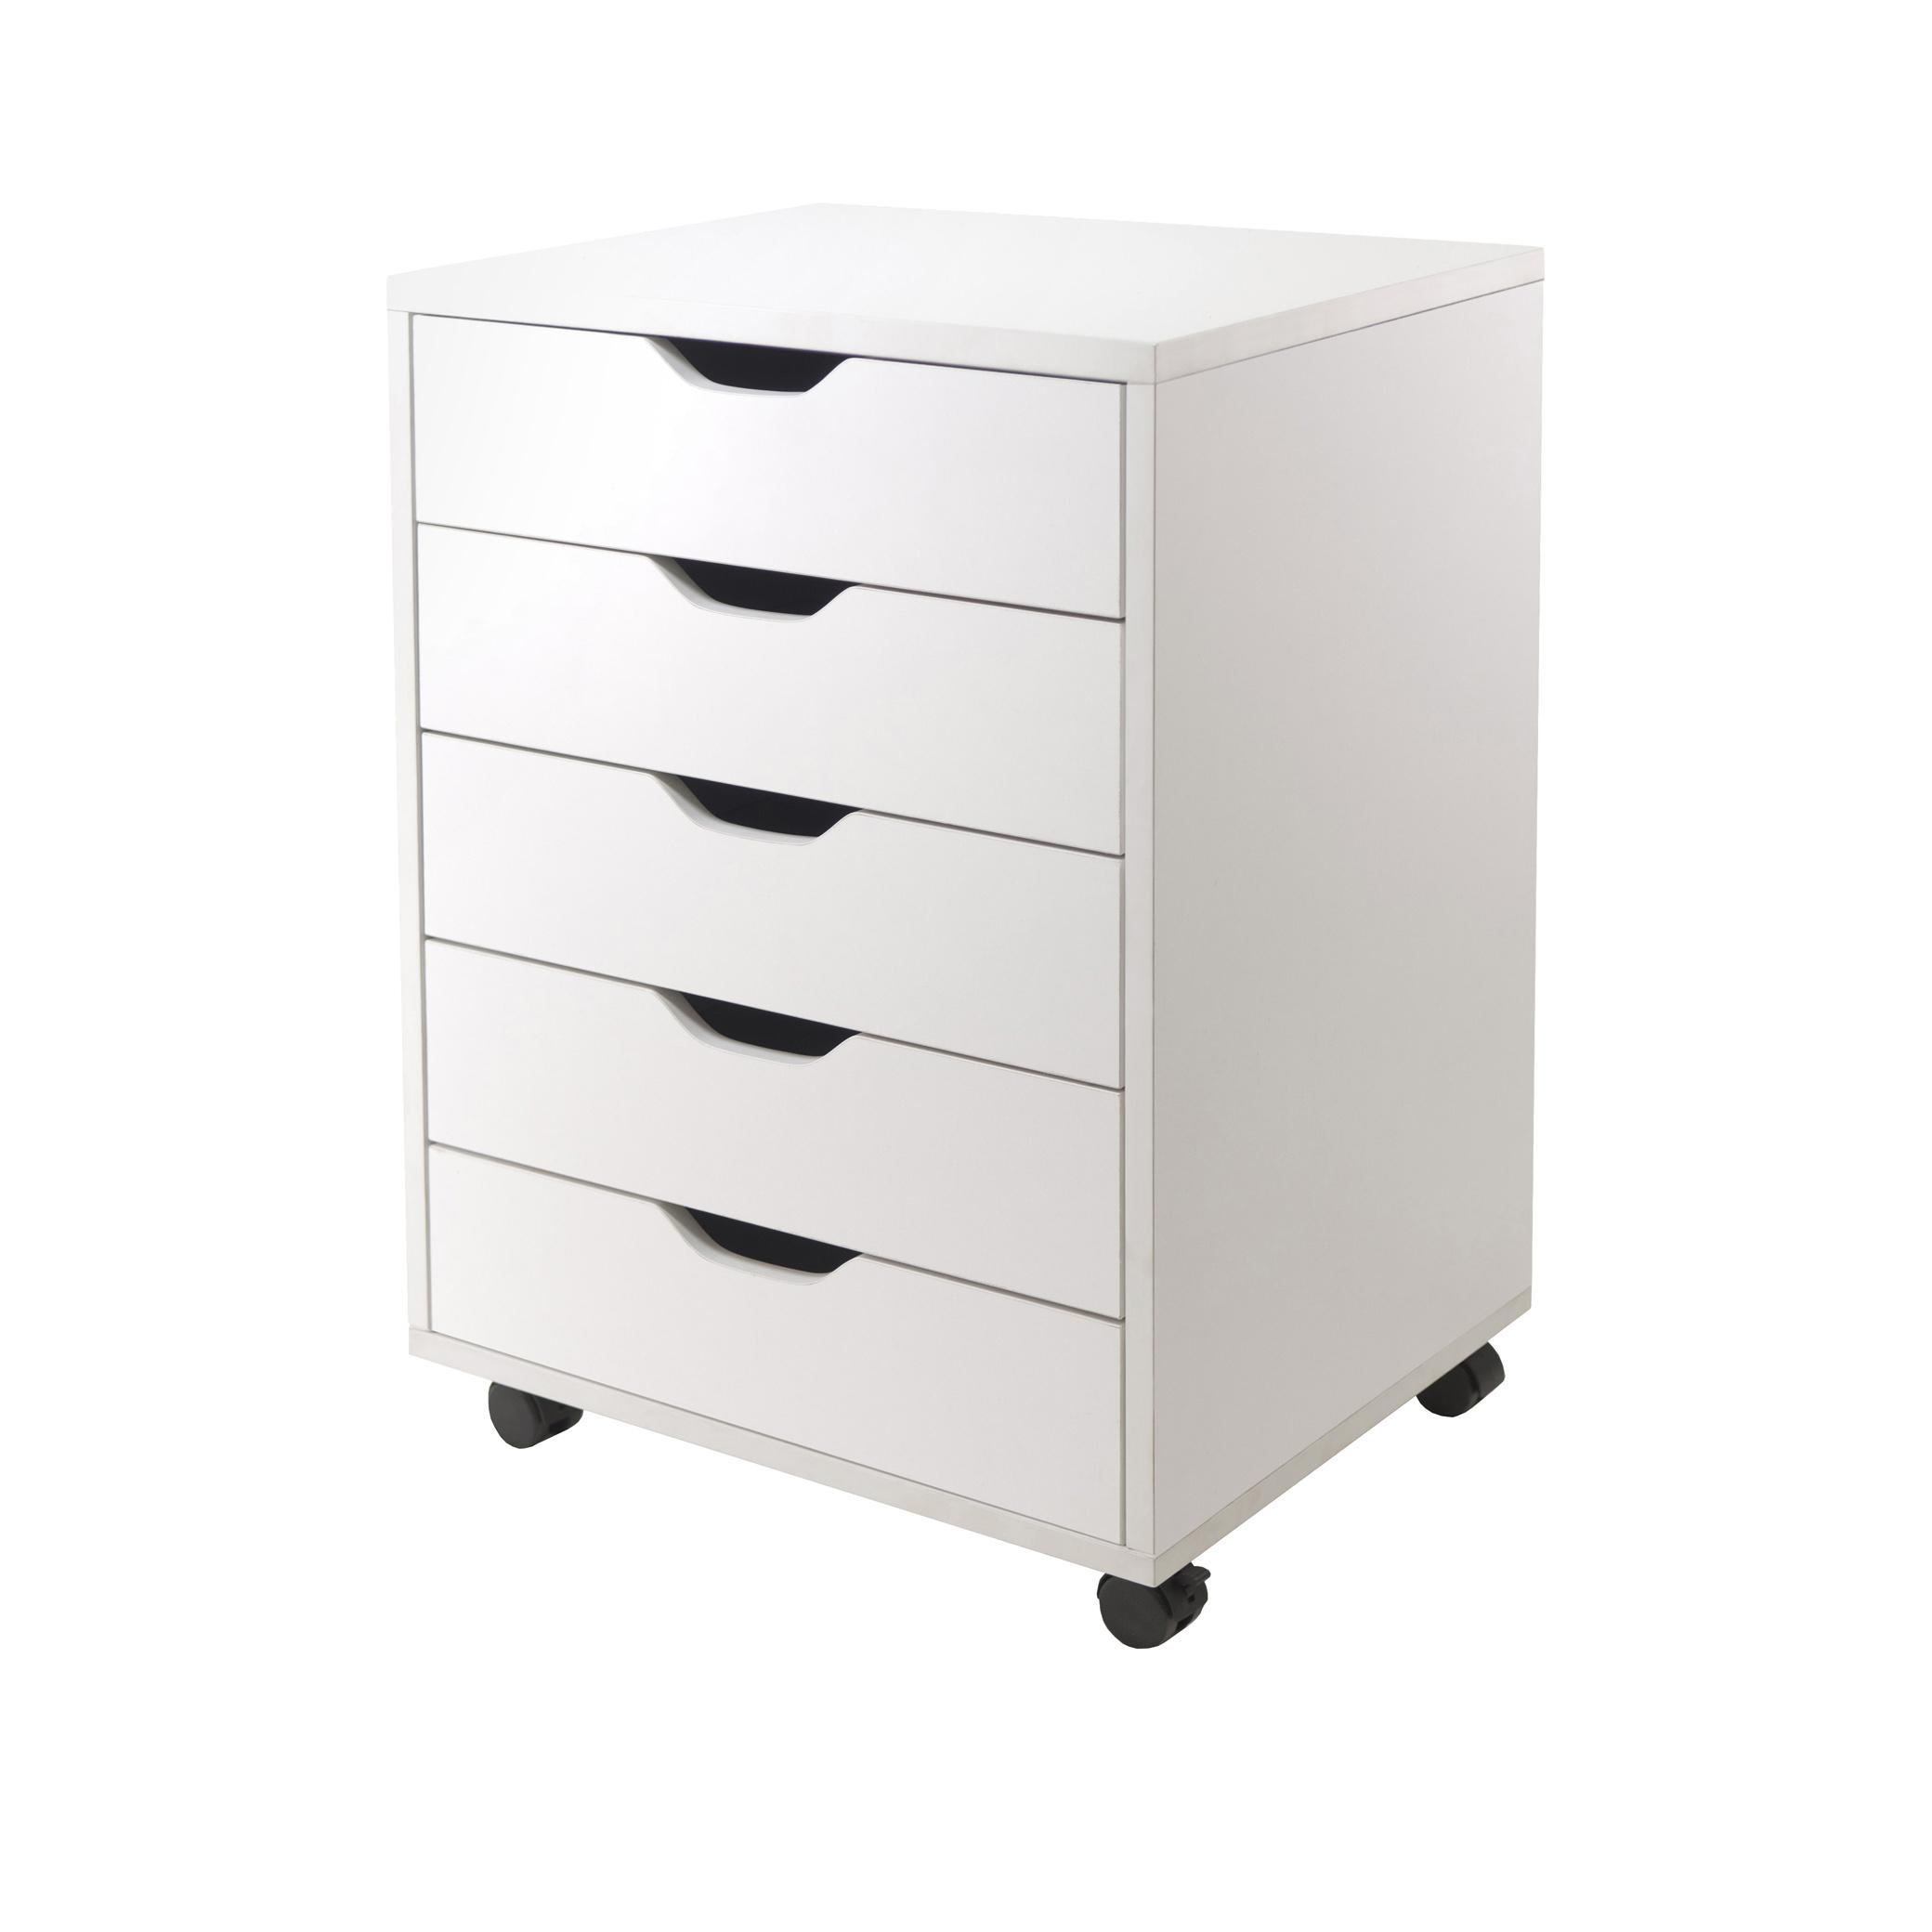 home drawer today shipping allison greyson by free drawers overstock product garden living antique white chest